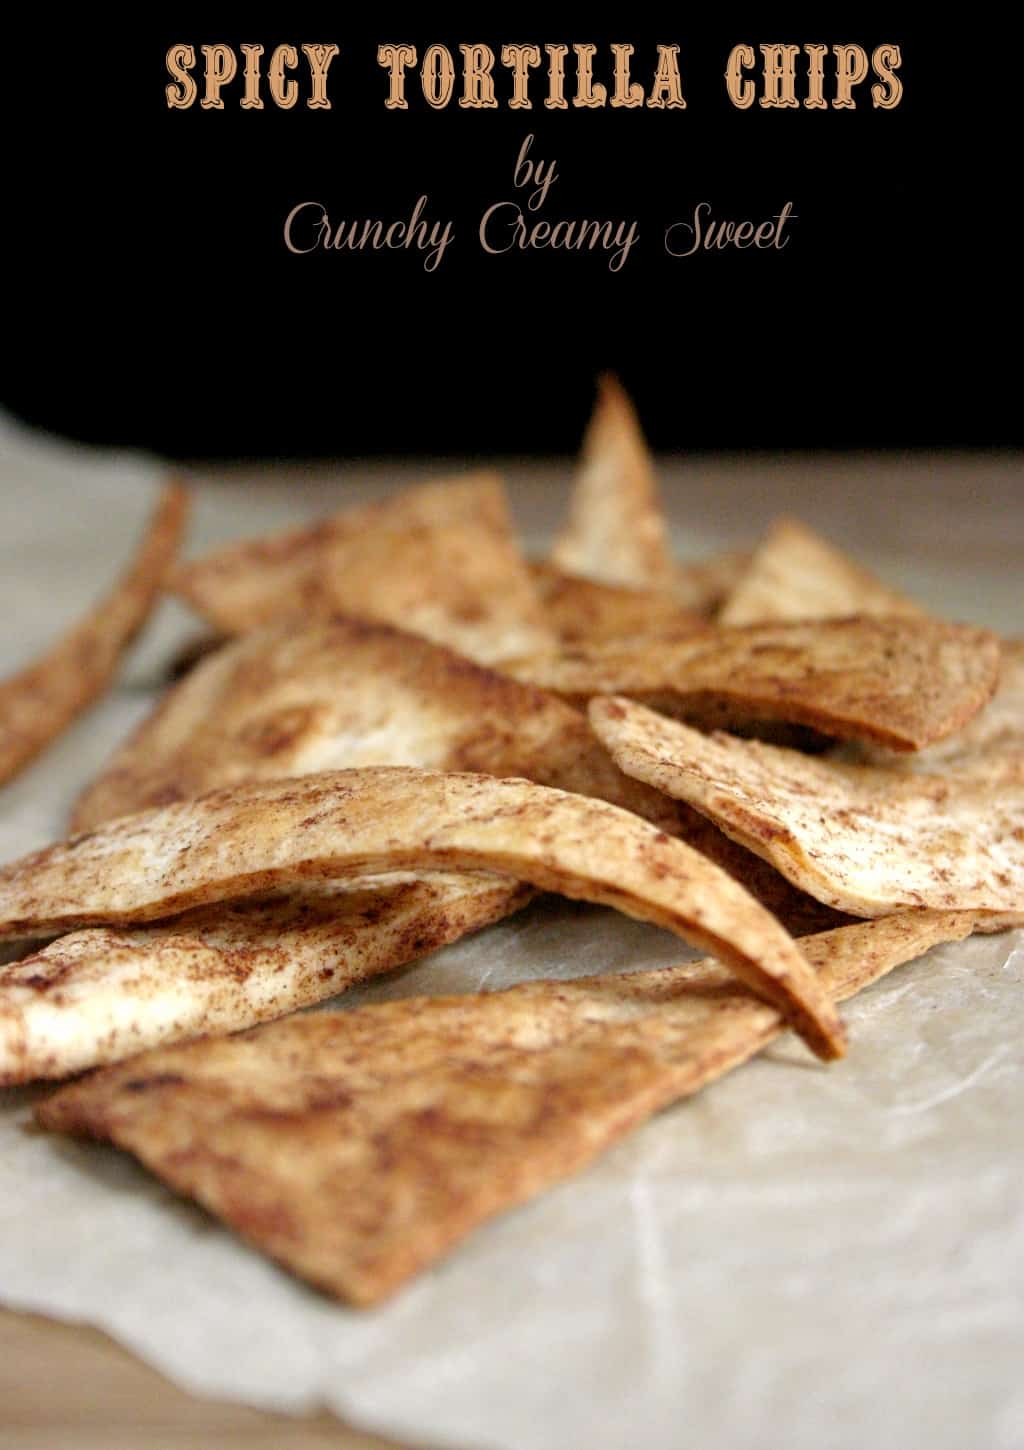 spicy tortilla chips 1 Spicy Tortilla Chips {baked}